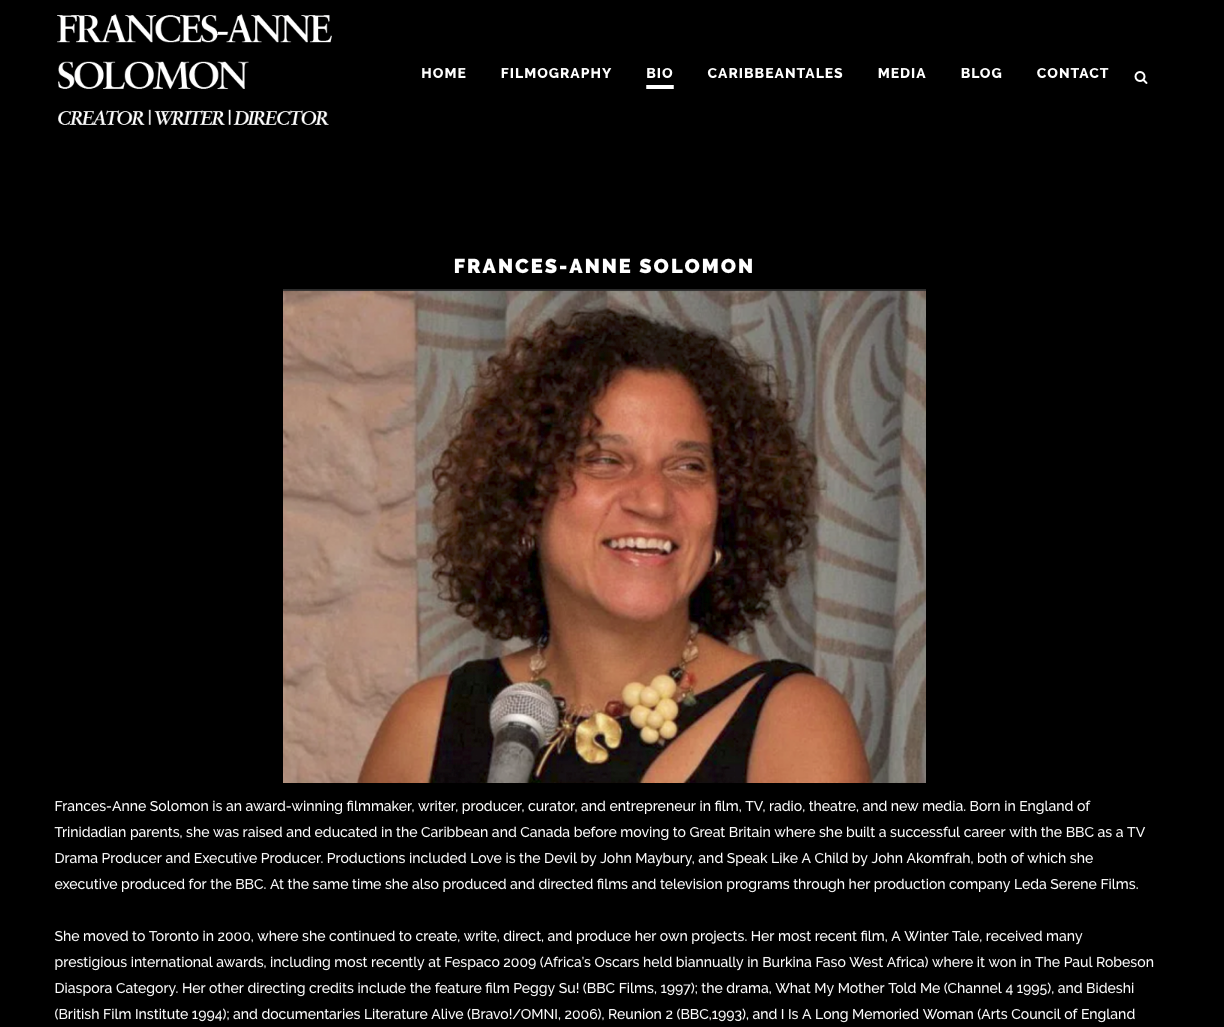 Frances-Anne Solomon Bio page